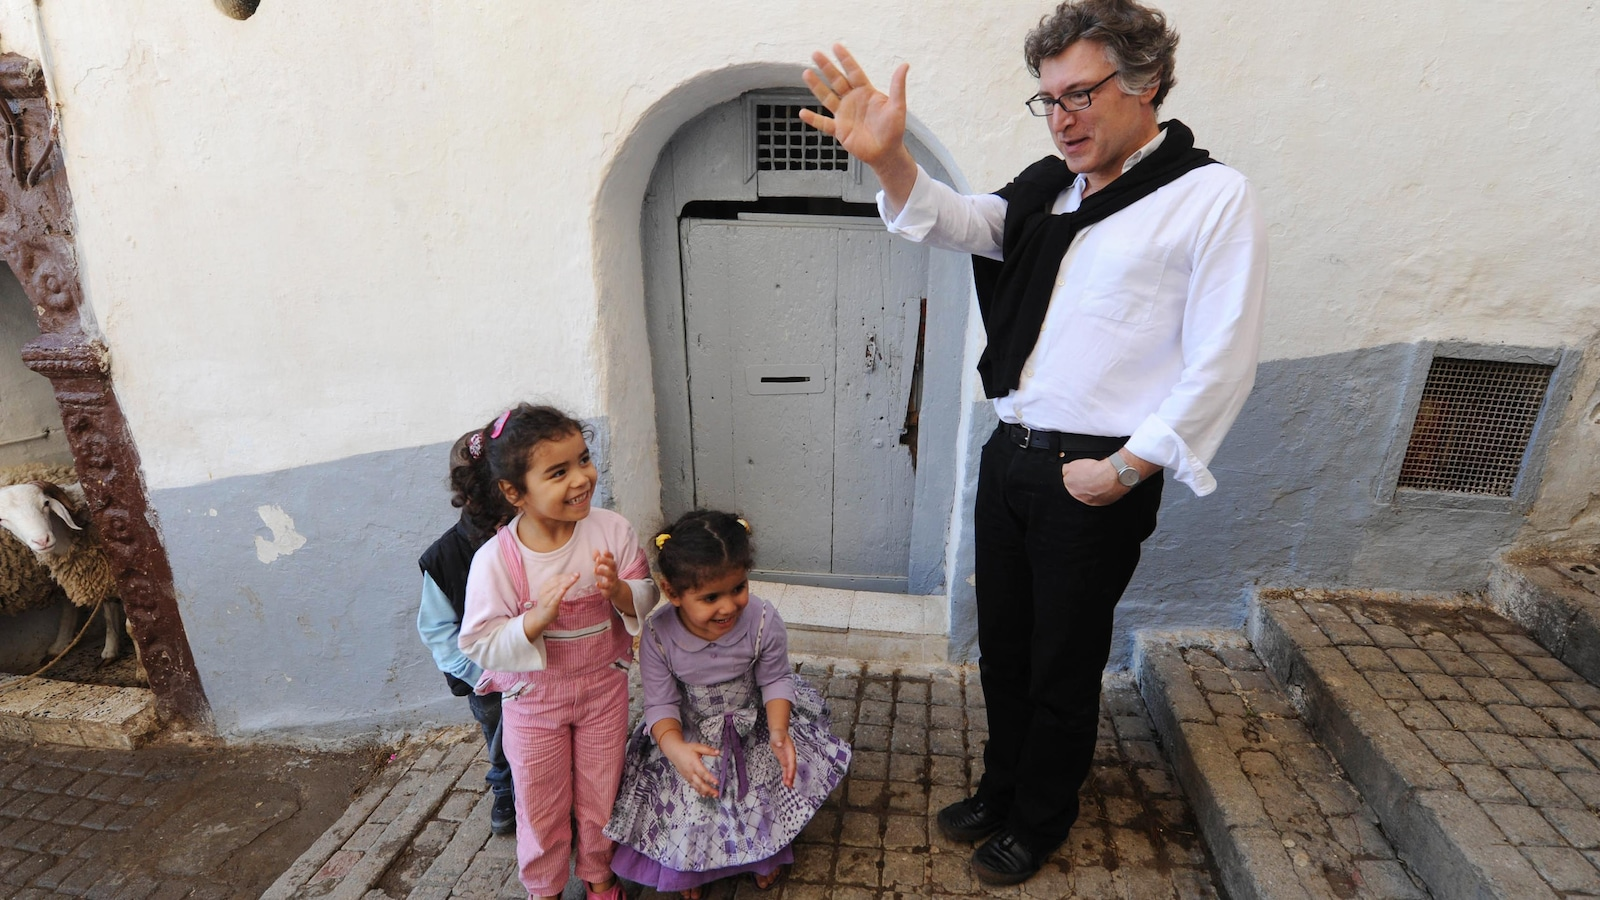 French philosopher Michel Onfray (R) speaks to children in the Casbah of Algiers on November 2, 2011. AFP PHOTO / FAROUK BATICHE        (Photo credit should read FAROUK BATICHE/AFP/Getty Images)